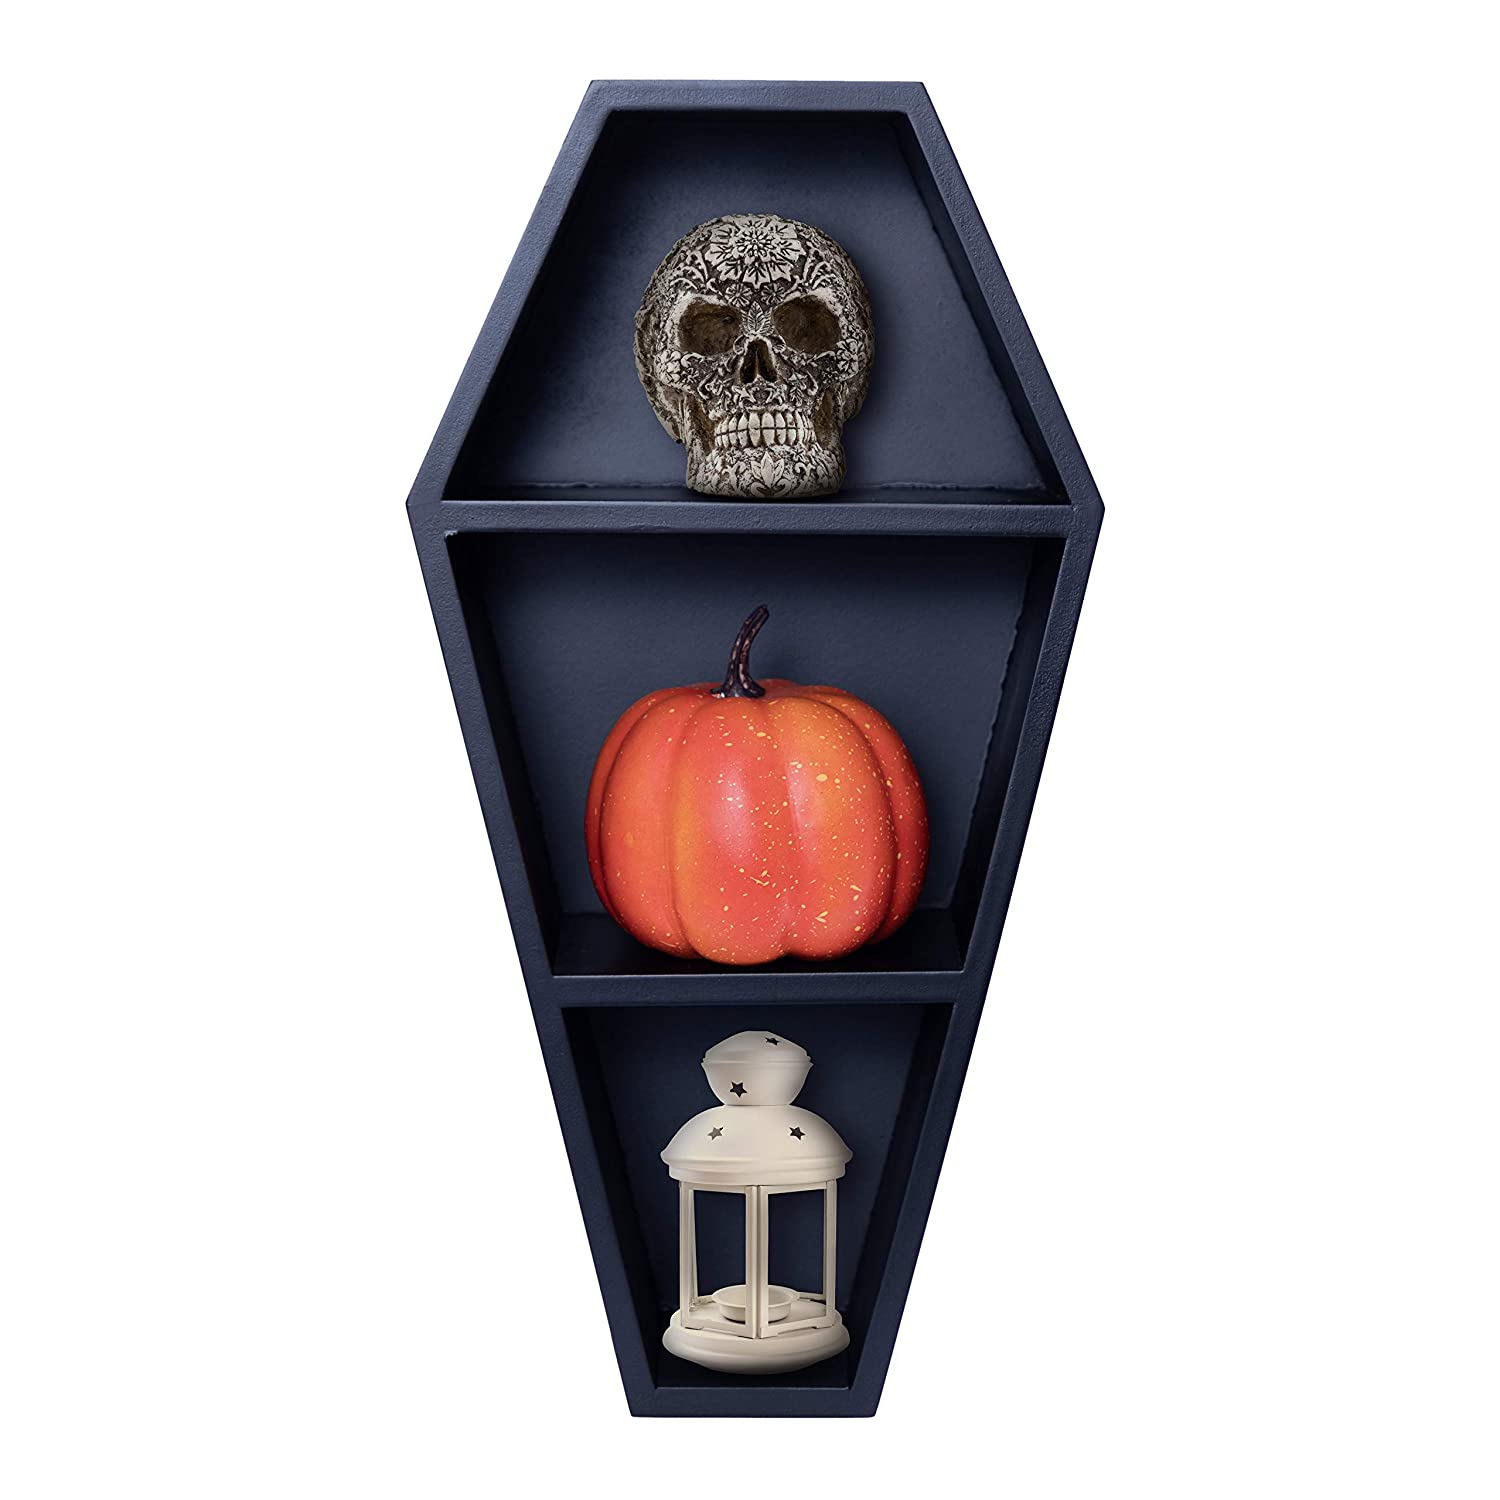 Manny's Mysterious Oddities Coffin Shelf - Gothic Decor for The Home - Black Hanging Wooden Shelf